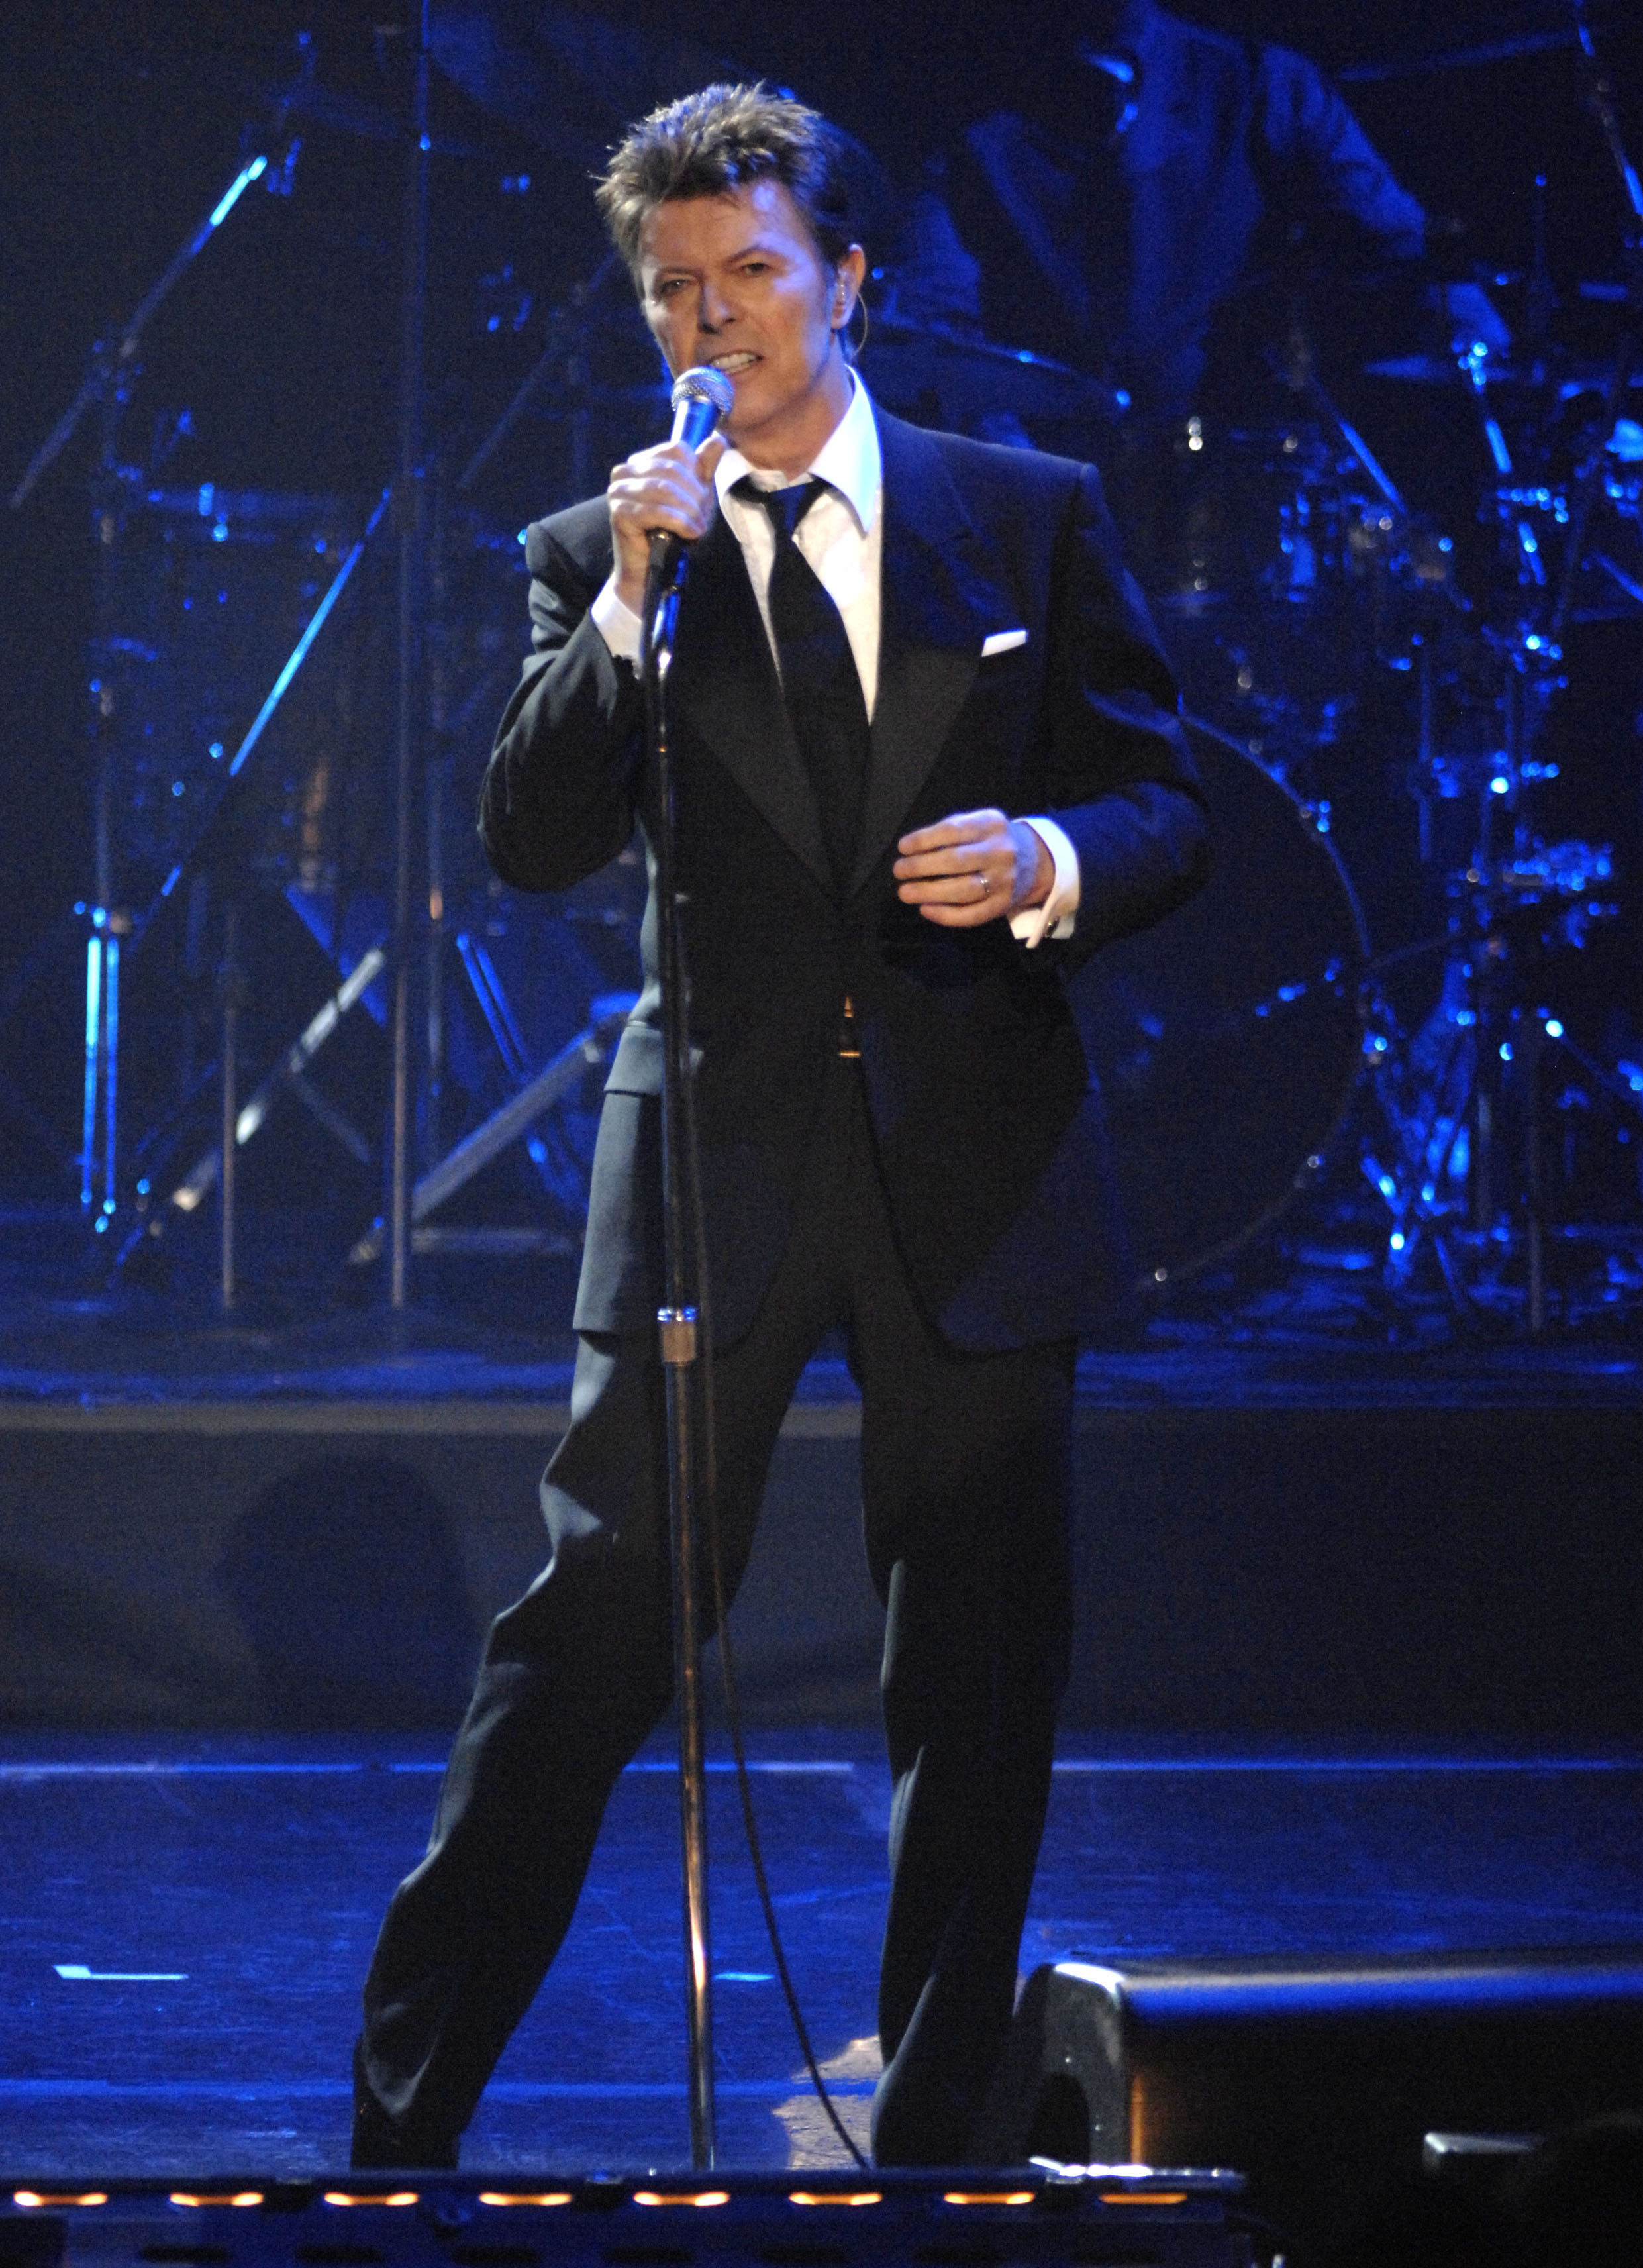 David Bowie during his last live performance on Nov. 09, 2006 in New York City.